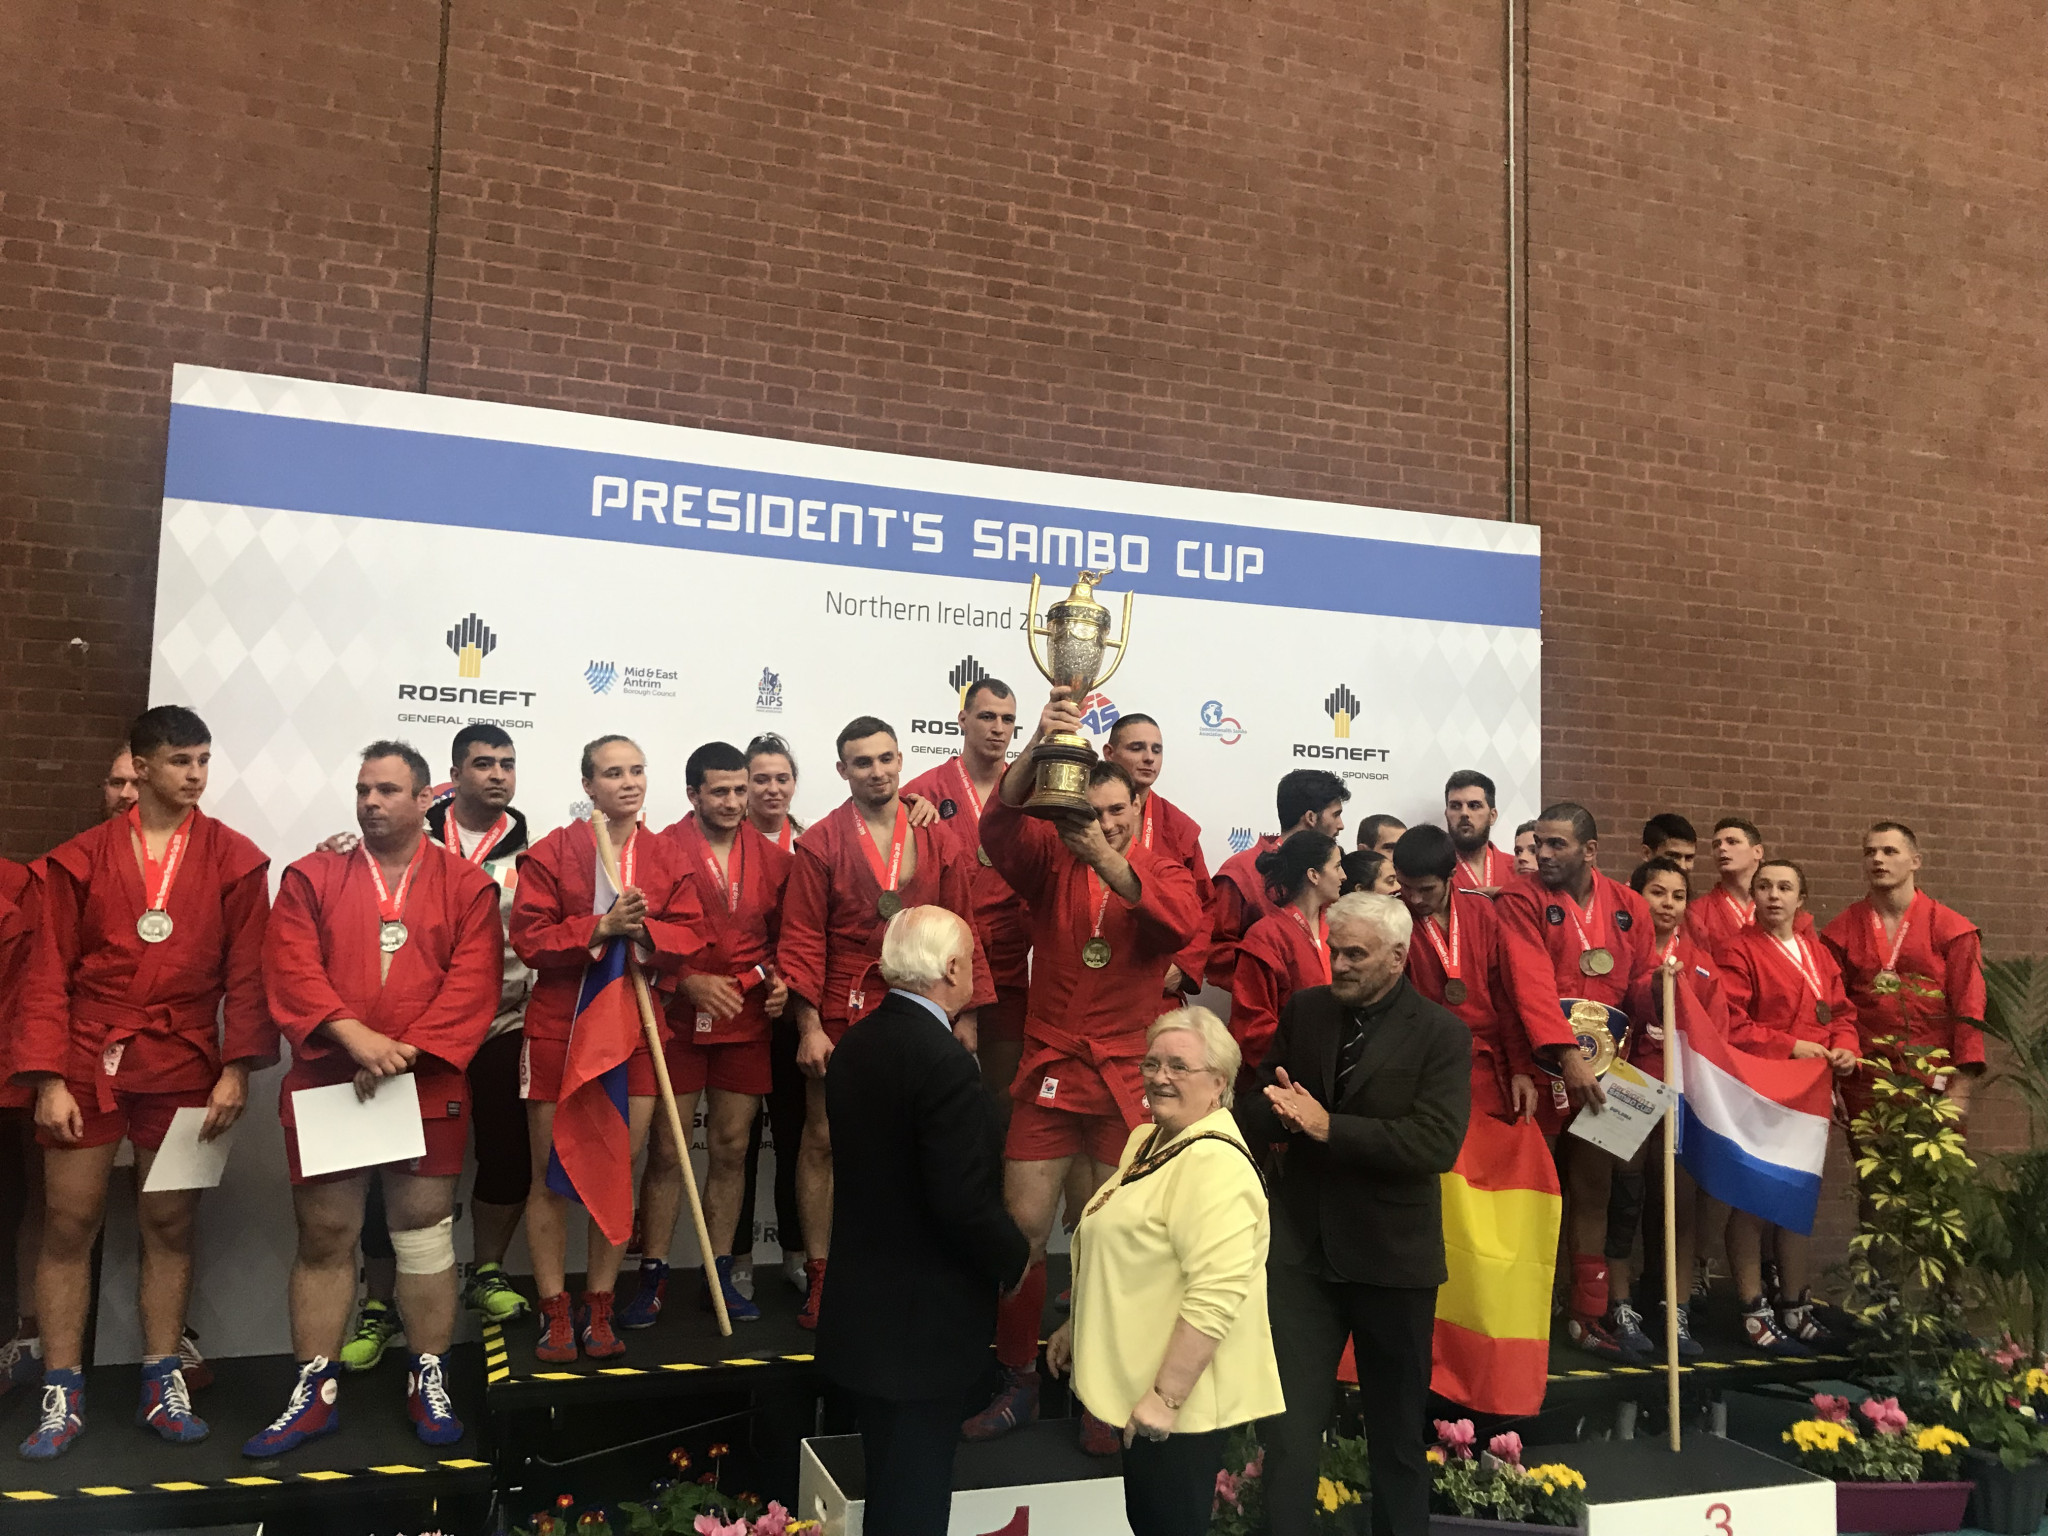 Russia defeat Republic of Ireland to win sixth President's Sambo Cup title